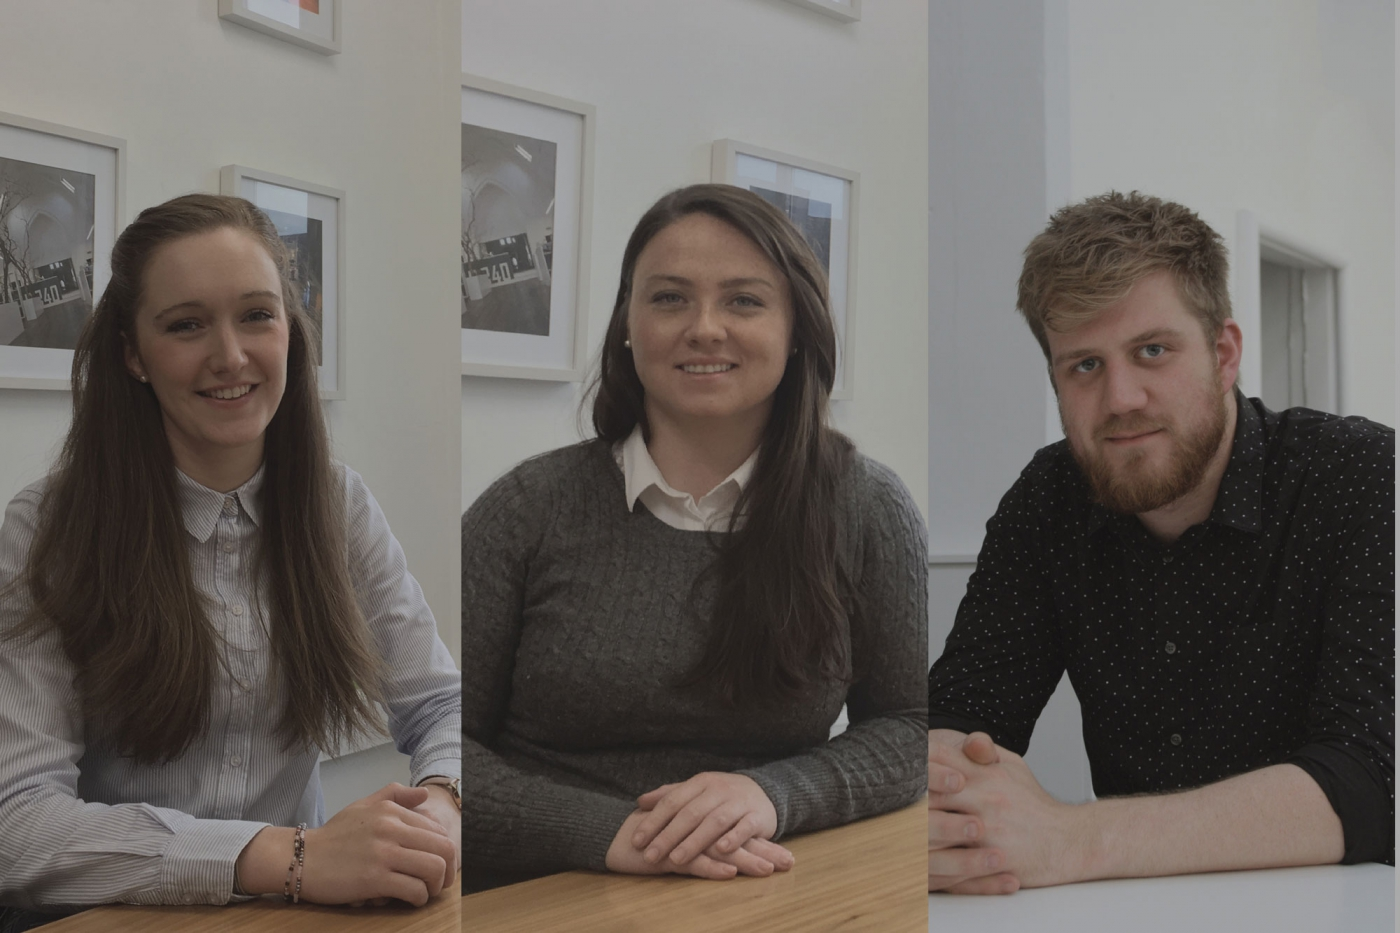 Kelly and Lauren join the team in Derry